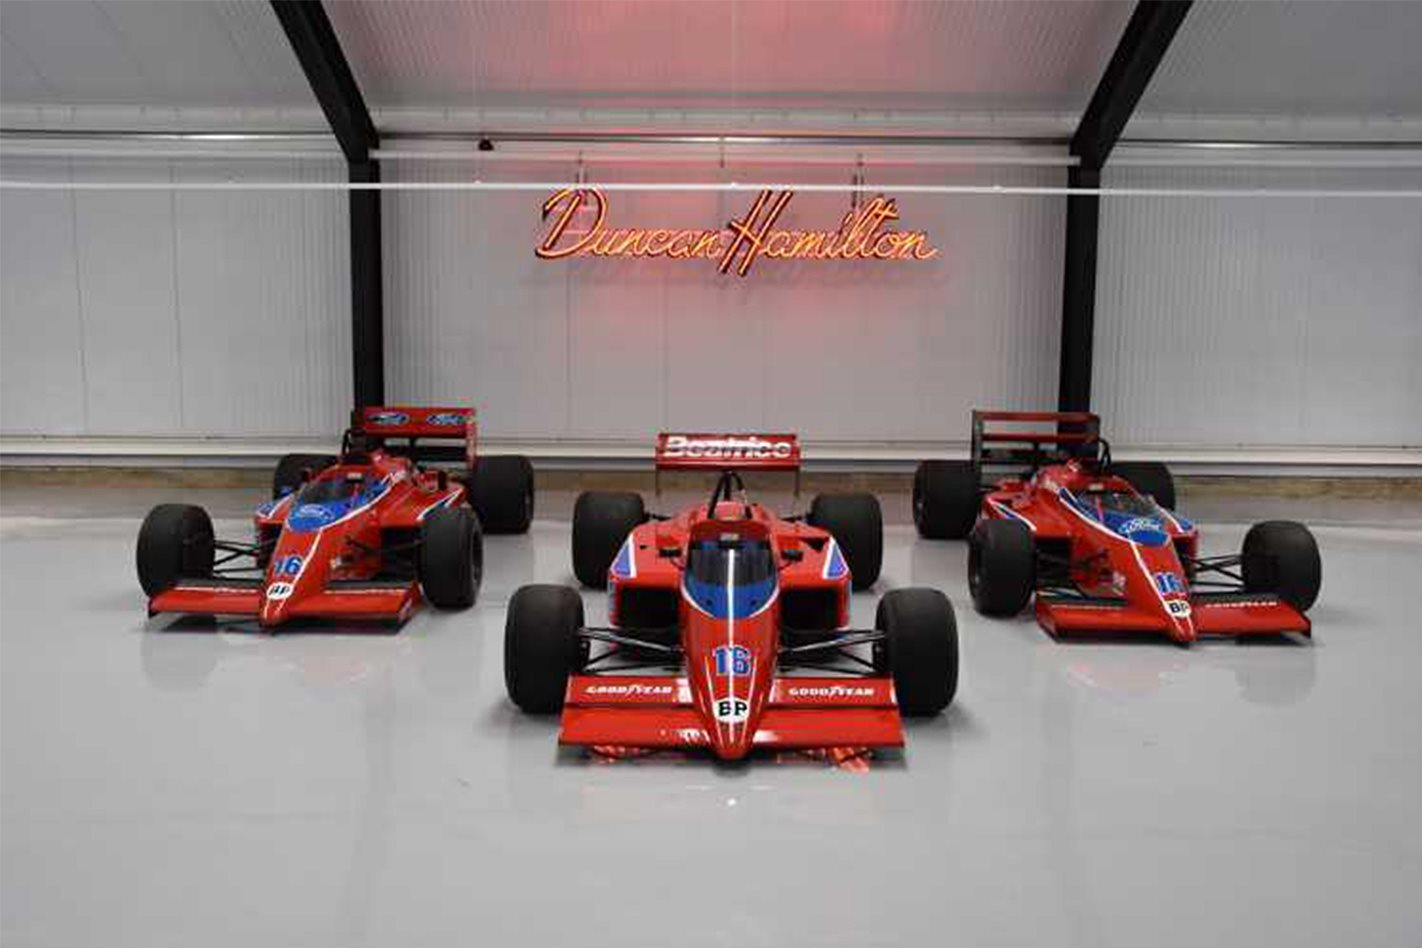 Trio of Beatrice Haas F1 cars